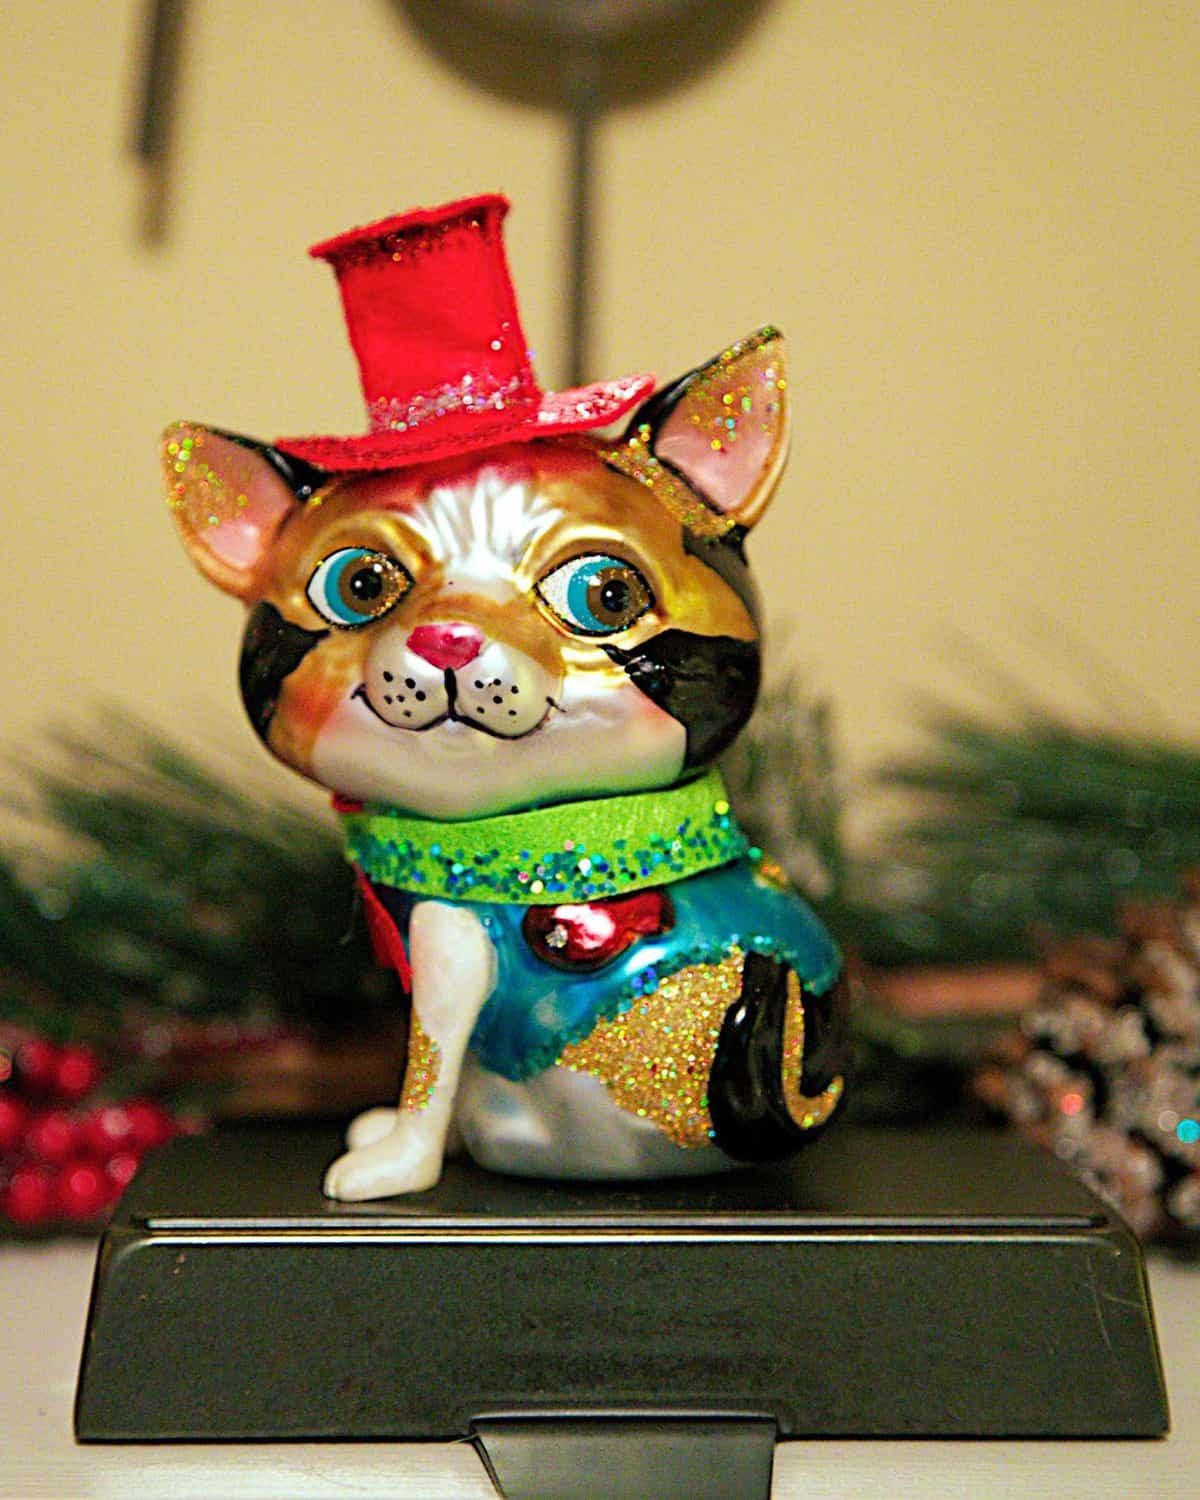 Glass Calico Ornament from Muinch